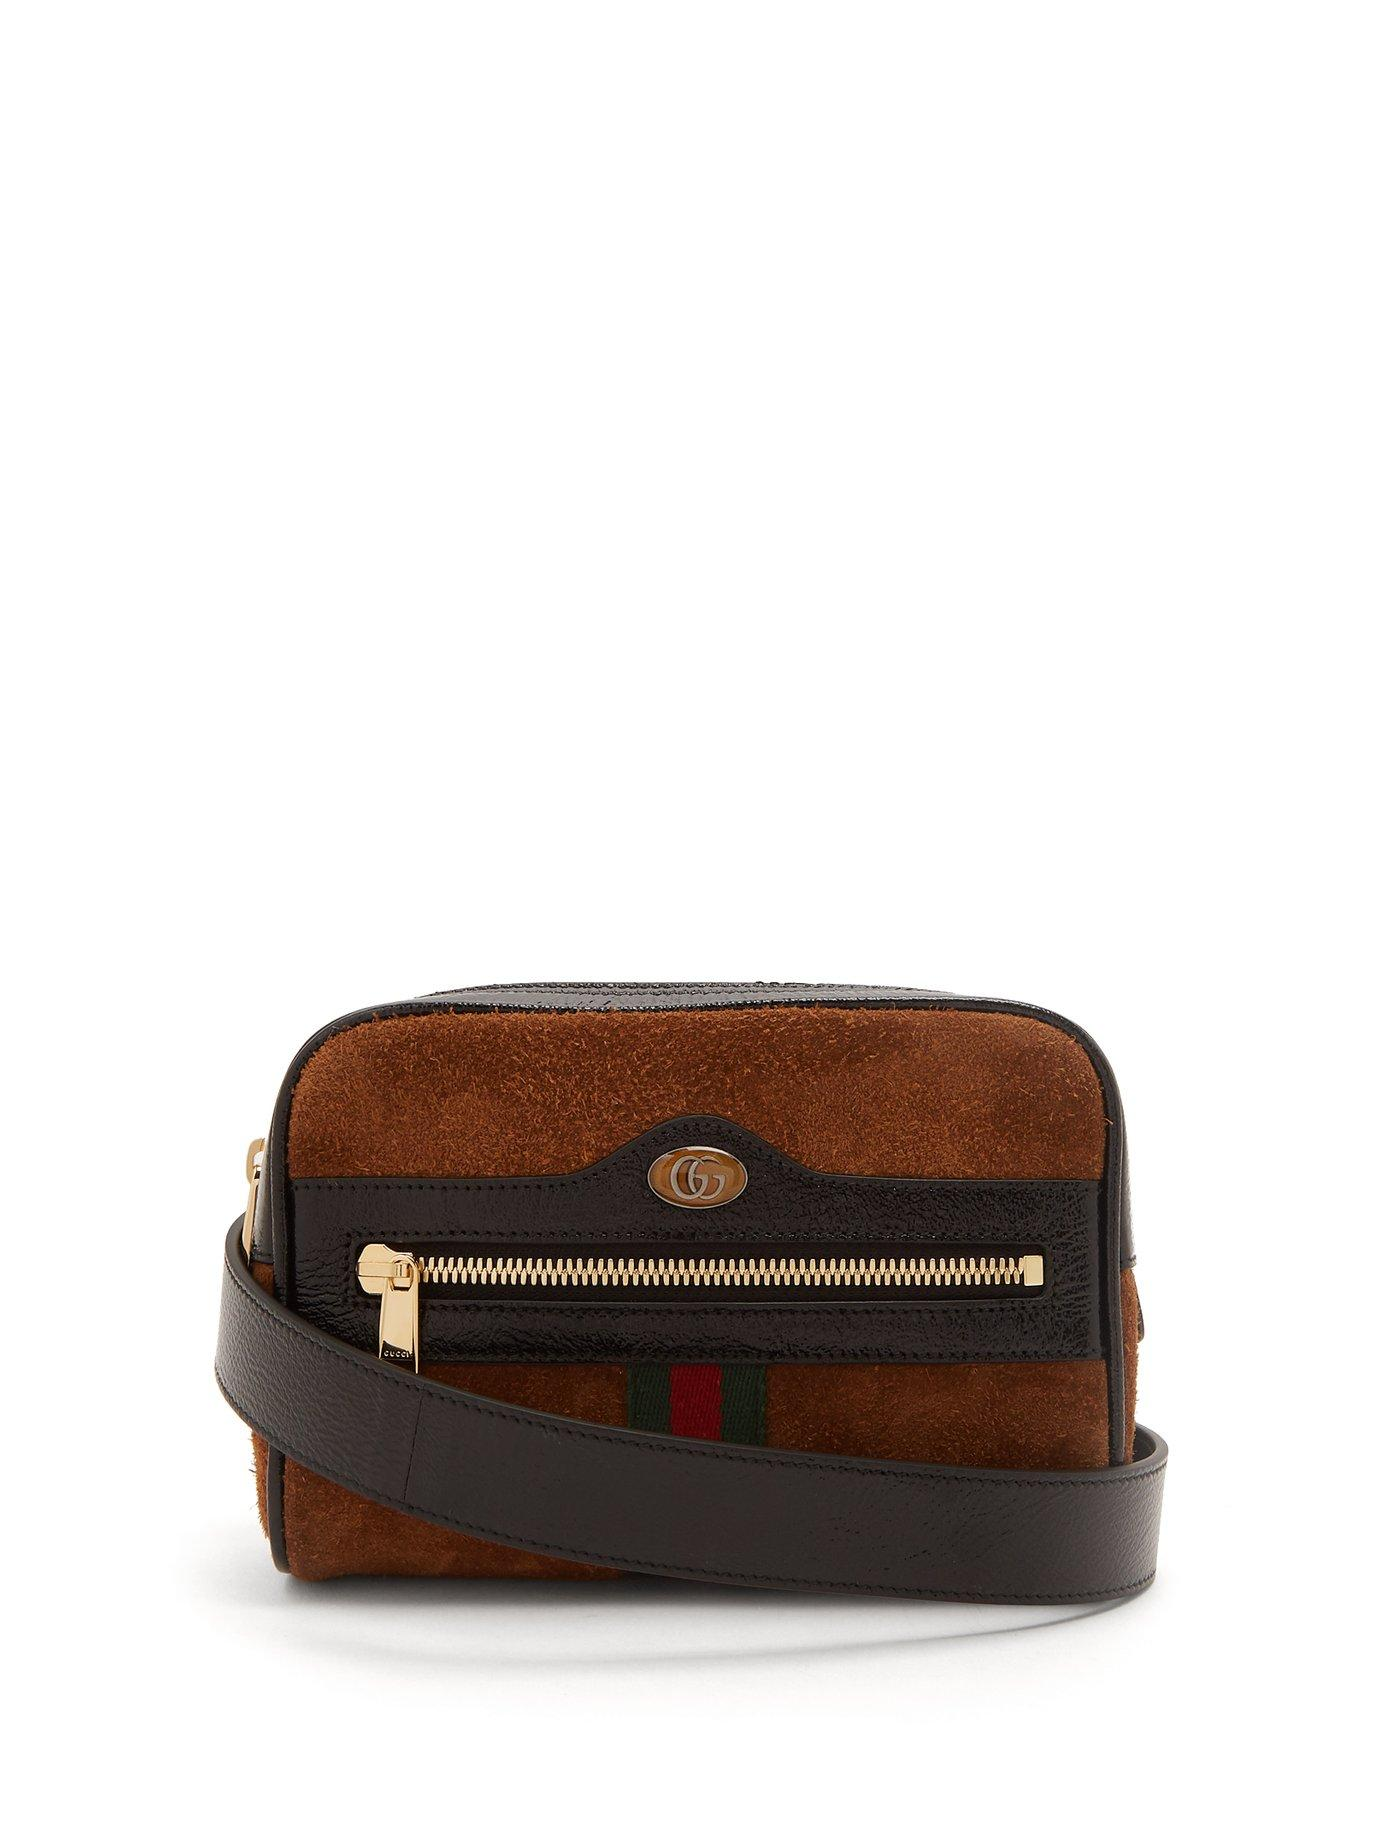 0140fe894eb0 Lyst - Gucci Ophidia Gg Suede Belt Bag in Brown